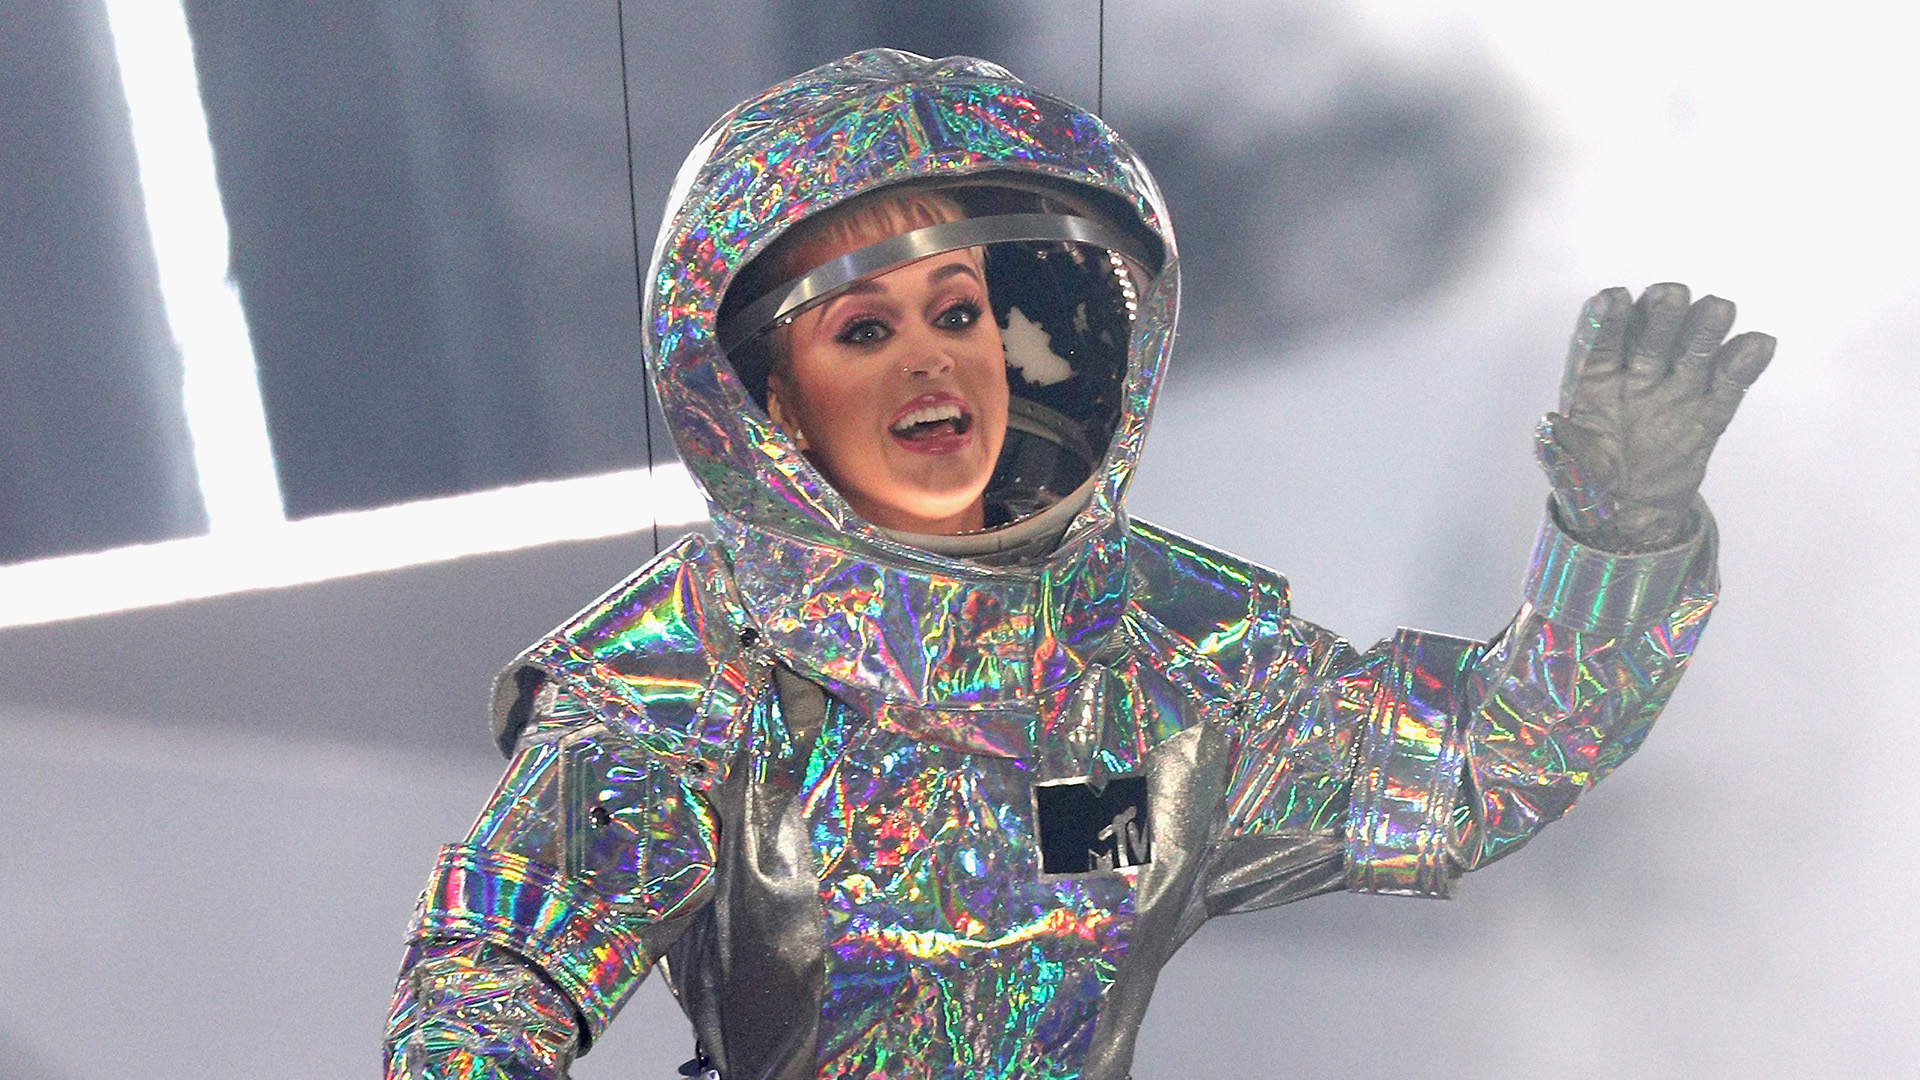 See Katy Perry's most buzzworthy VMAs moments and costumes